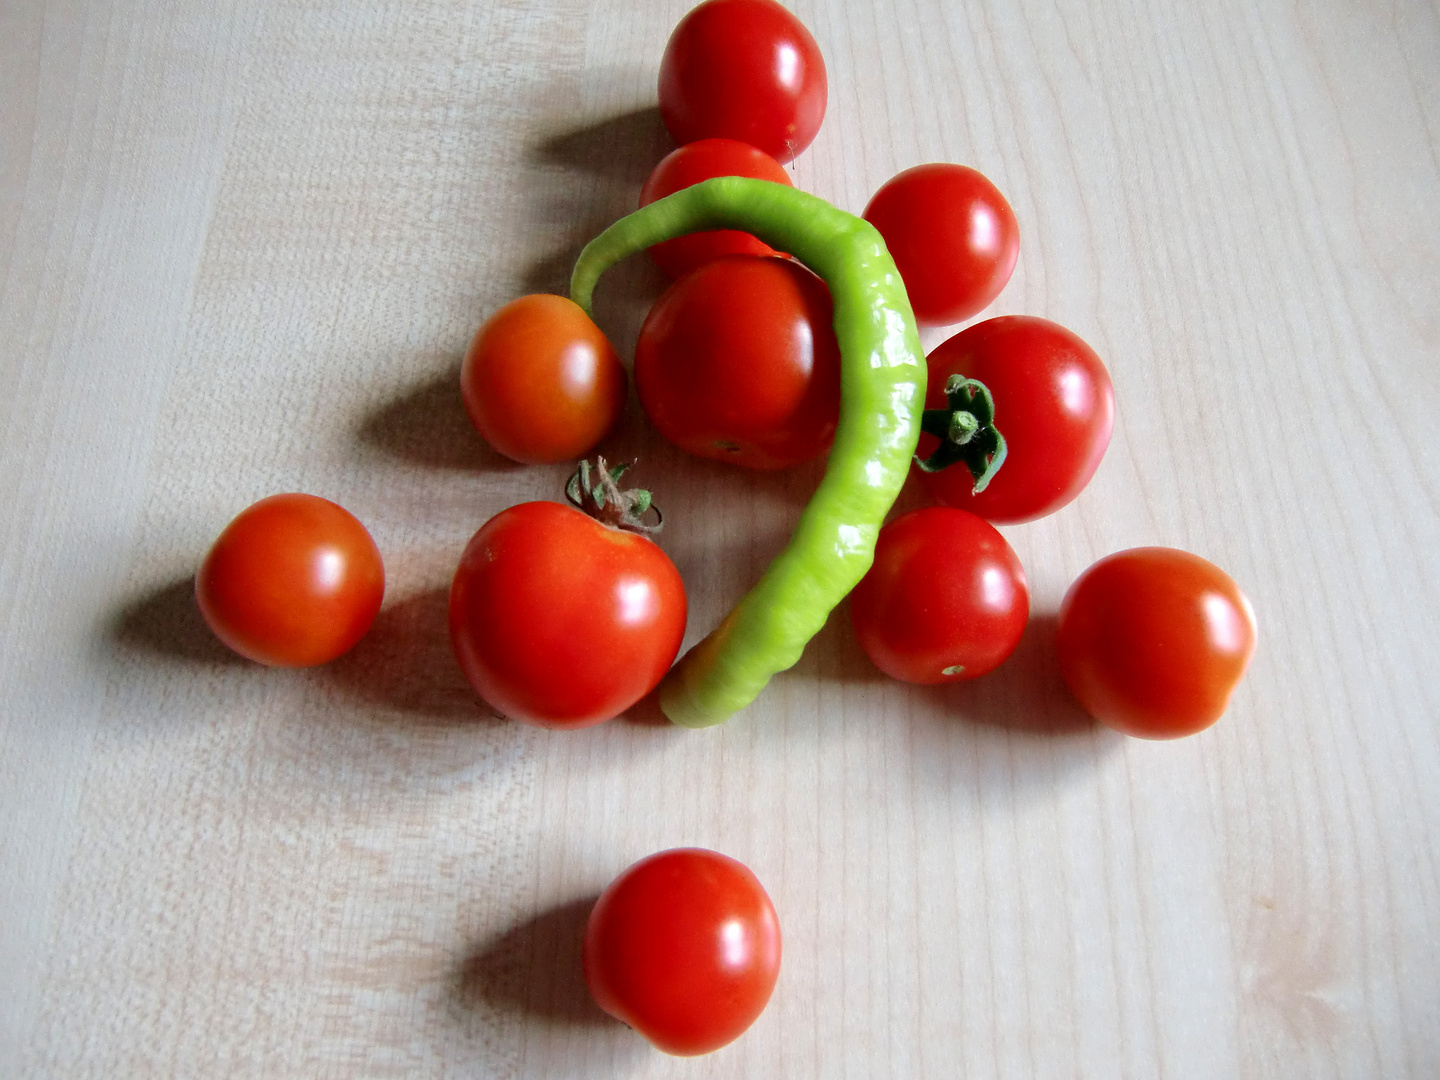 tomatoes and chillies n° 1